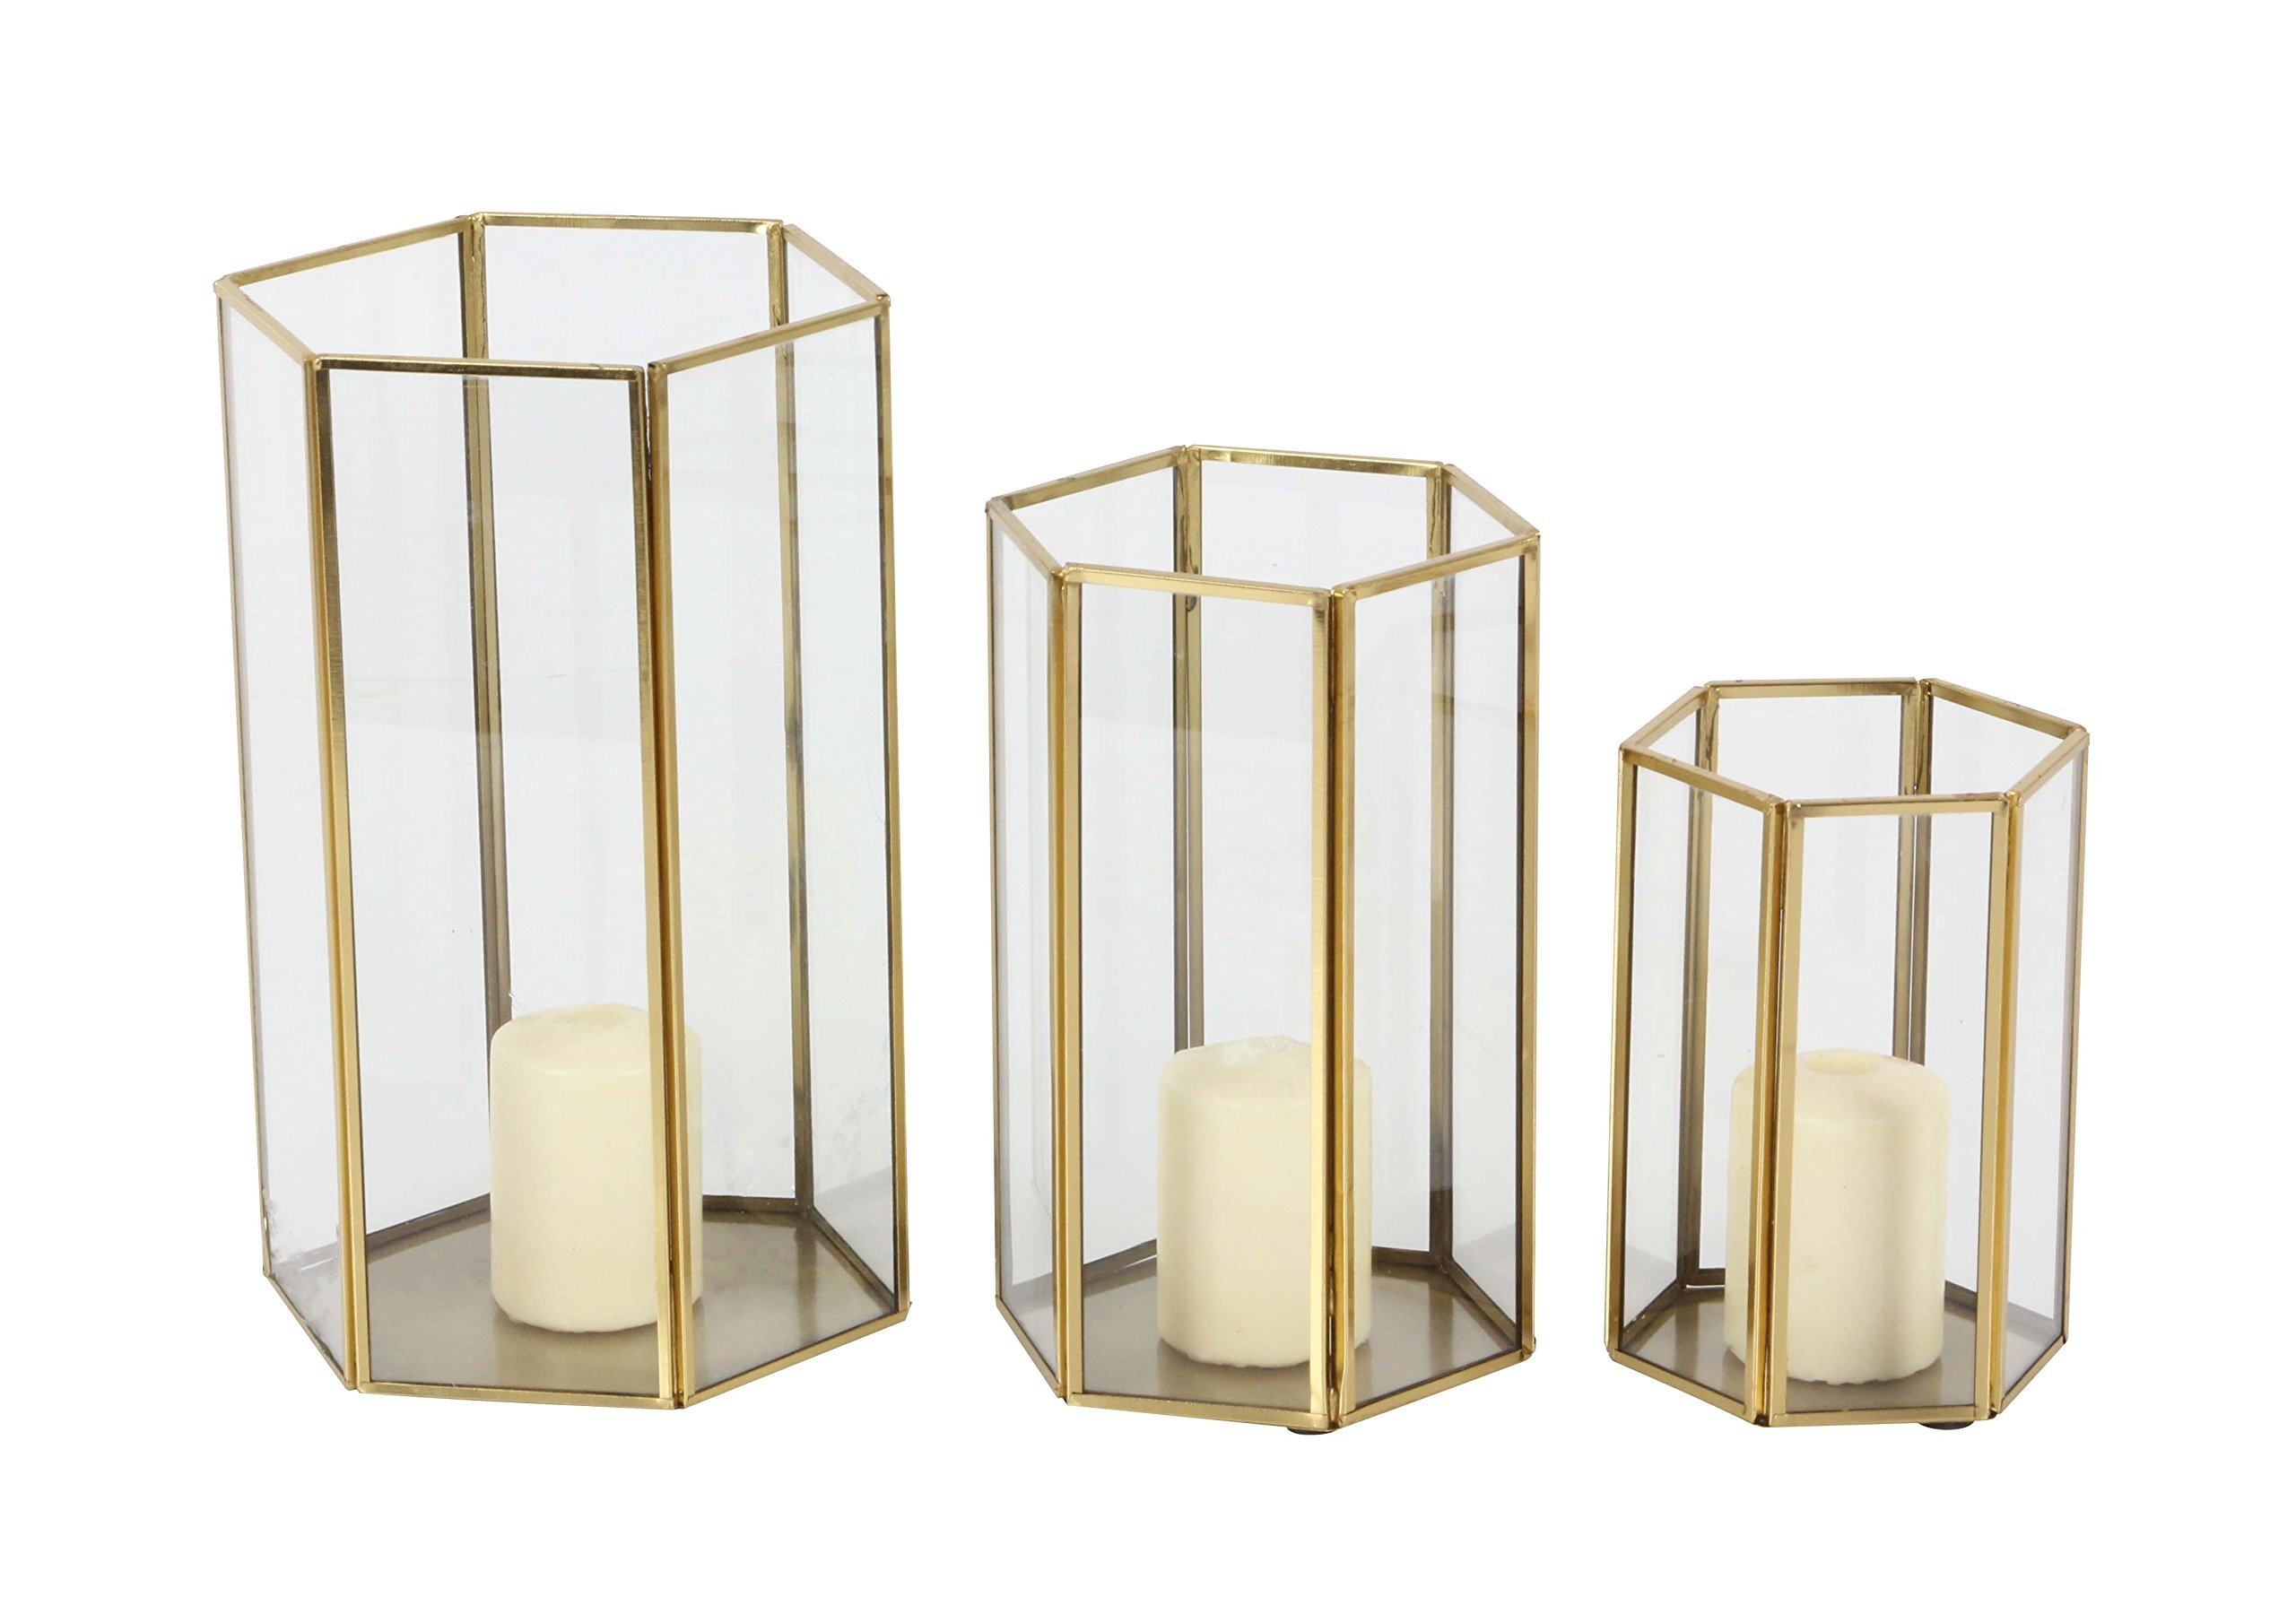 Deco 79 57378 Hexagonal Prism-Shaped Iron Glass Candle Lanterns, 6'' x 8'' x 10'', Gold/Clear